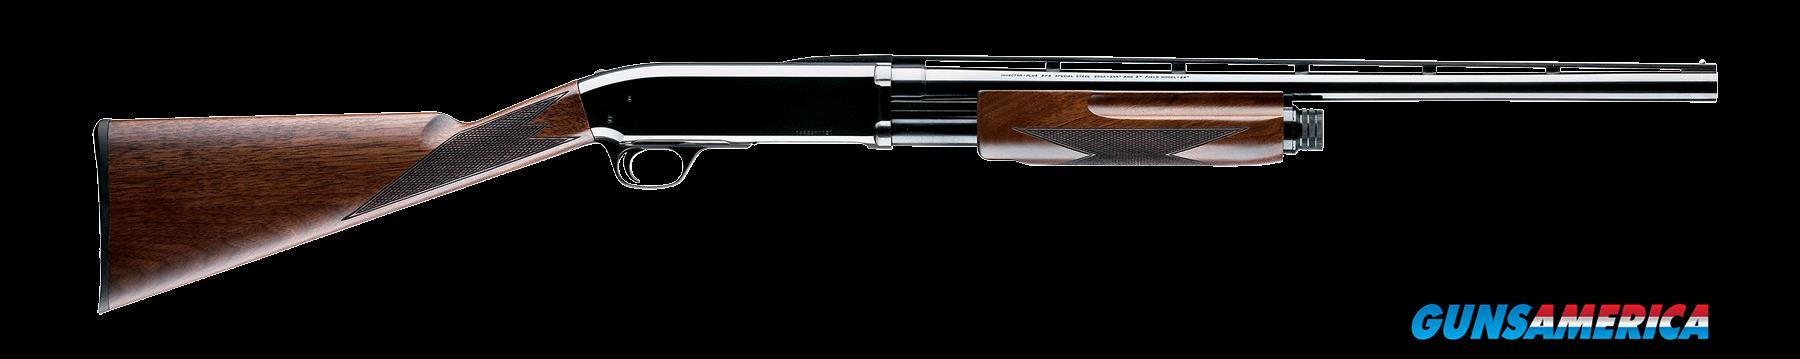 "Browning 012216515 BPS 16 Gauge 24"" 2.75"" Blk Walnut Stk Blued High Polish Rcvr  Guns > Shotguns > Browning Shotguns > Pump Action > Hunting"